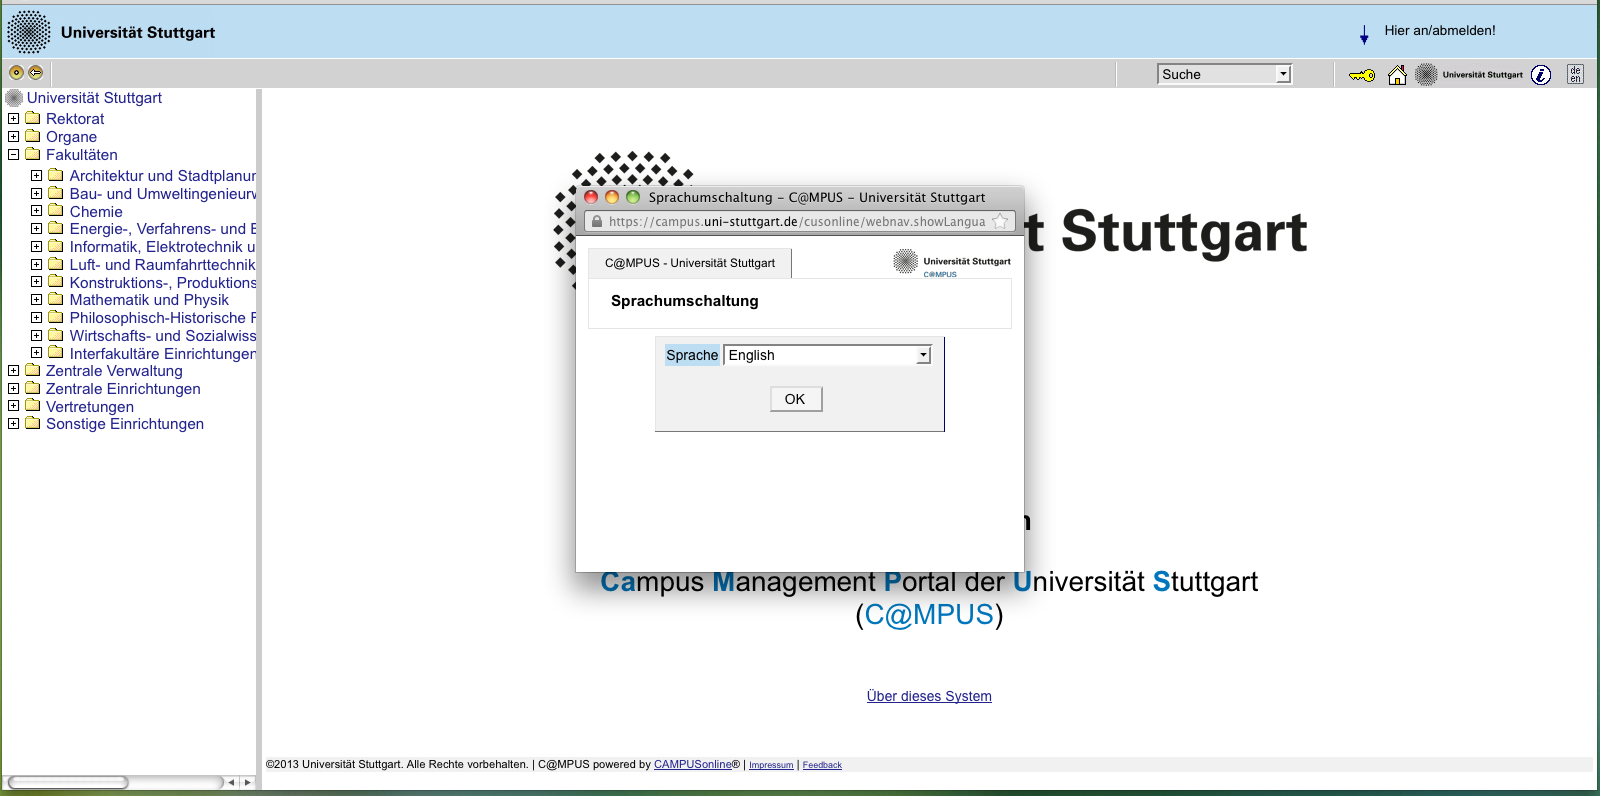 REGISTRATION Step 01 Connect to the portal Please use the link (https://campus.uni-stuttgart.de) provided on our homepage to connect to the application portal.